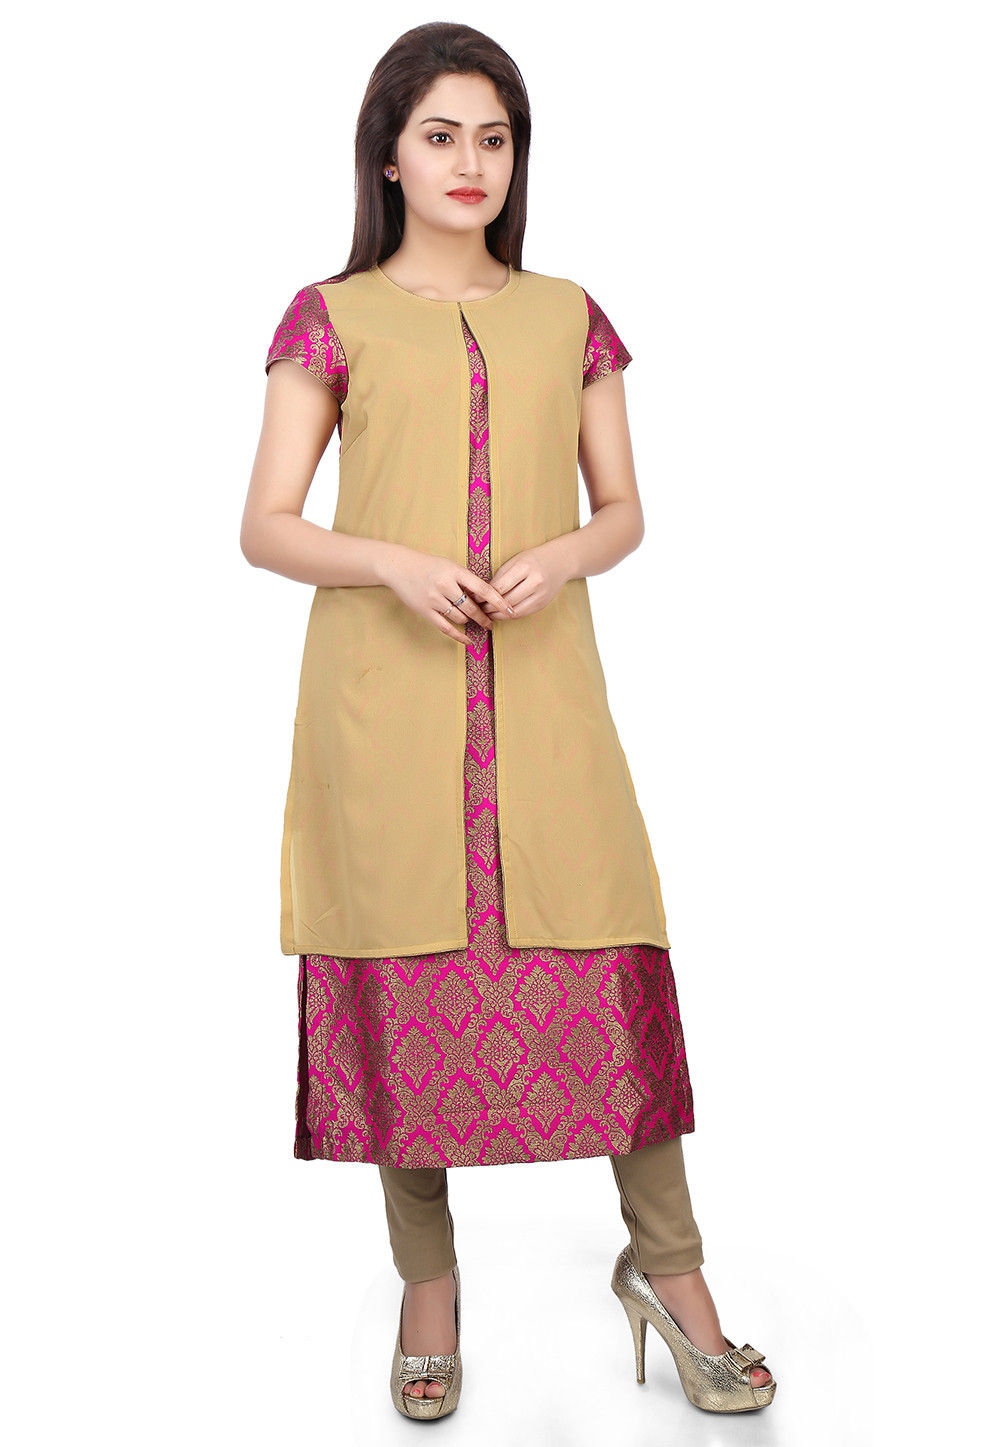 Brocade and Georgette Jacket Style Long Kurta in Beige and Fuchsia